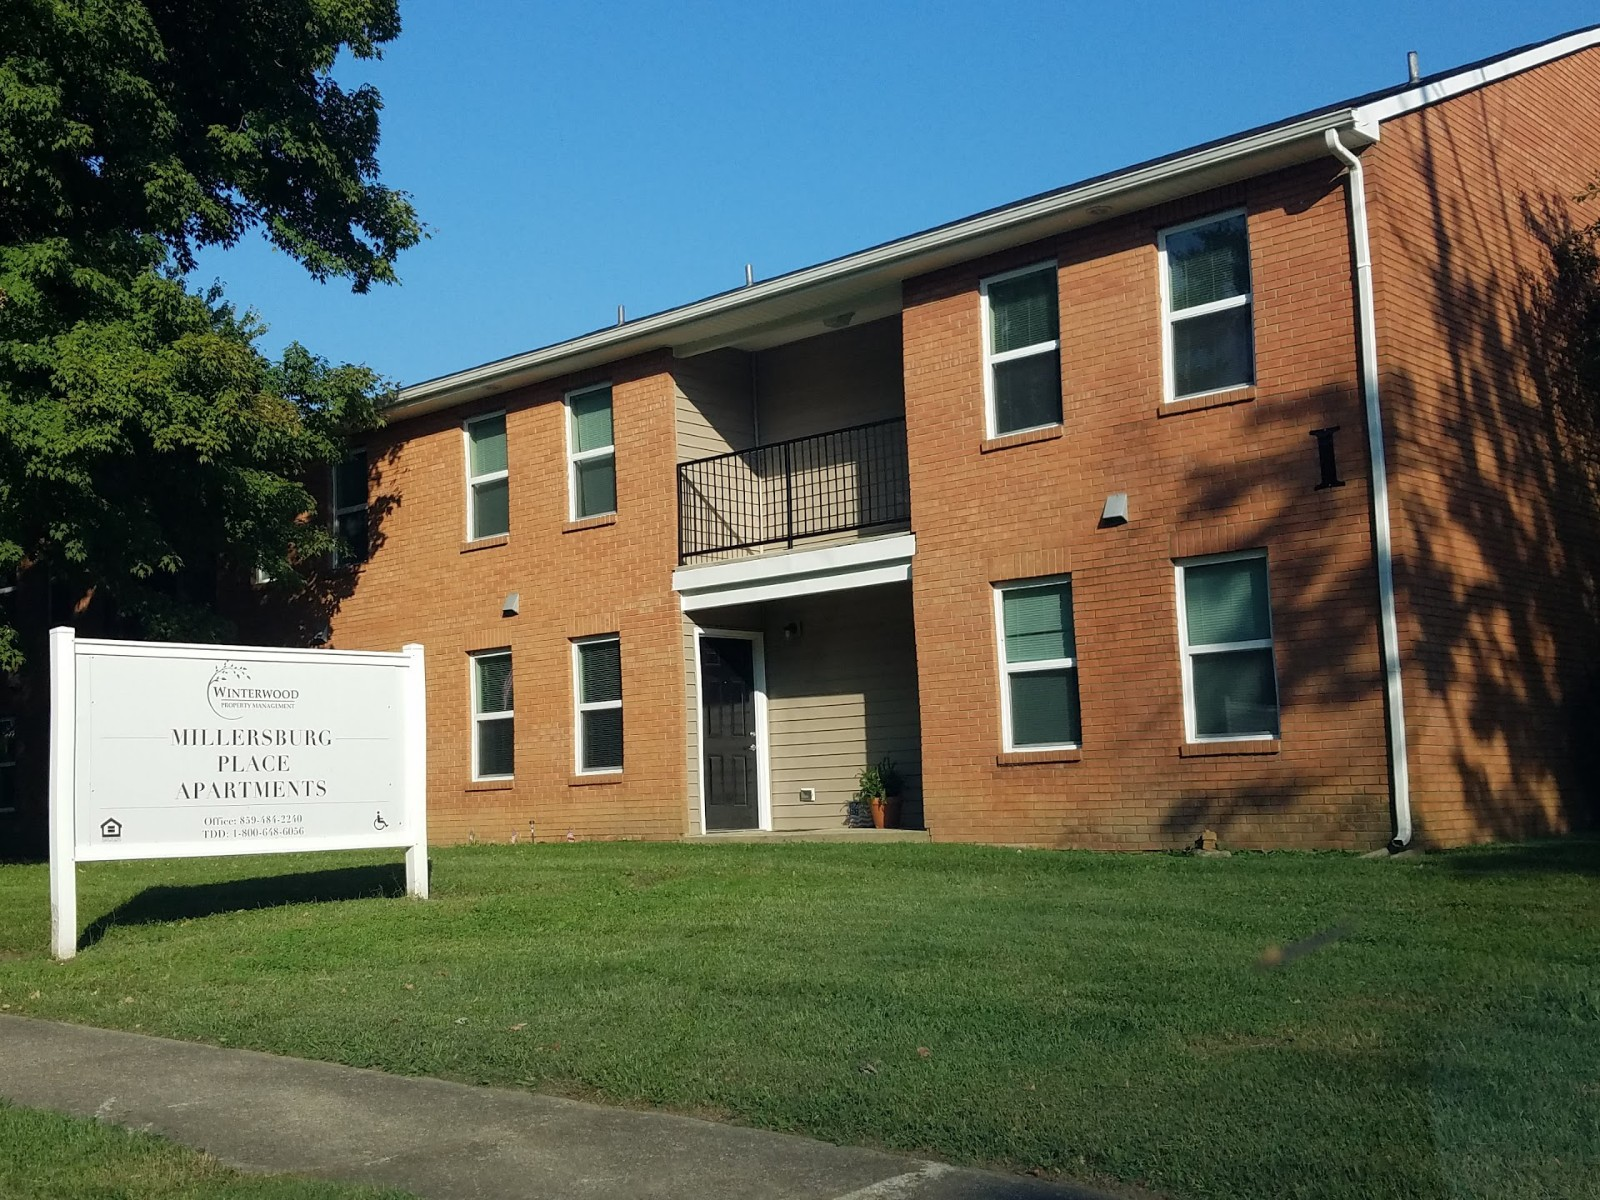 Image of Millersburg Place Apartments